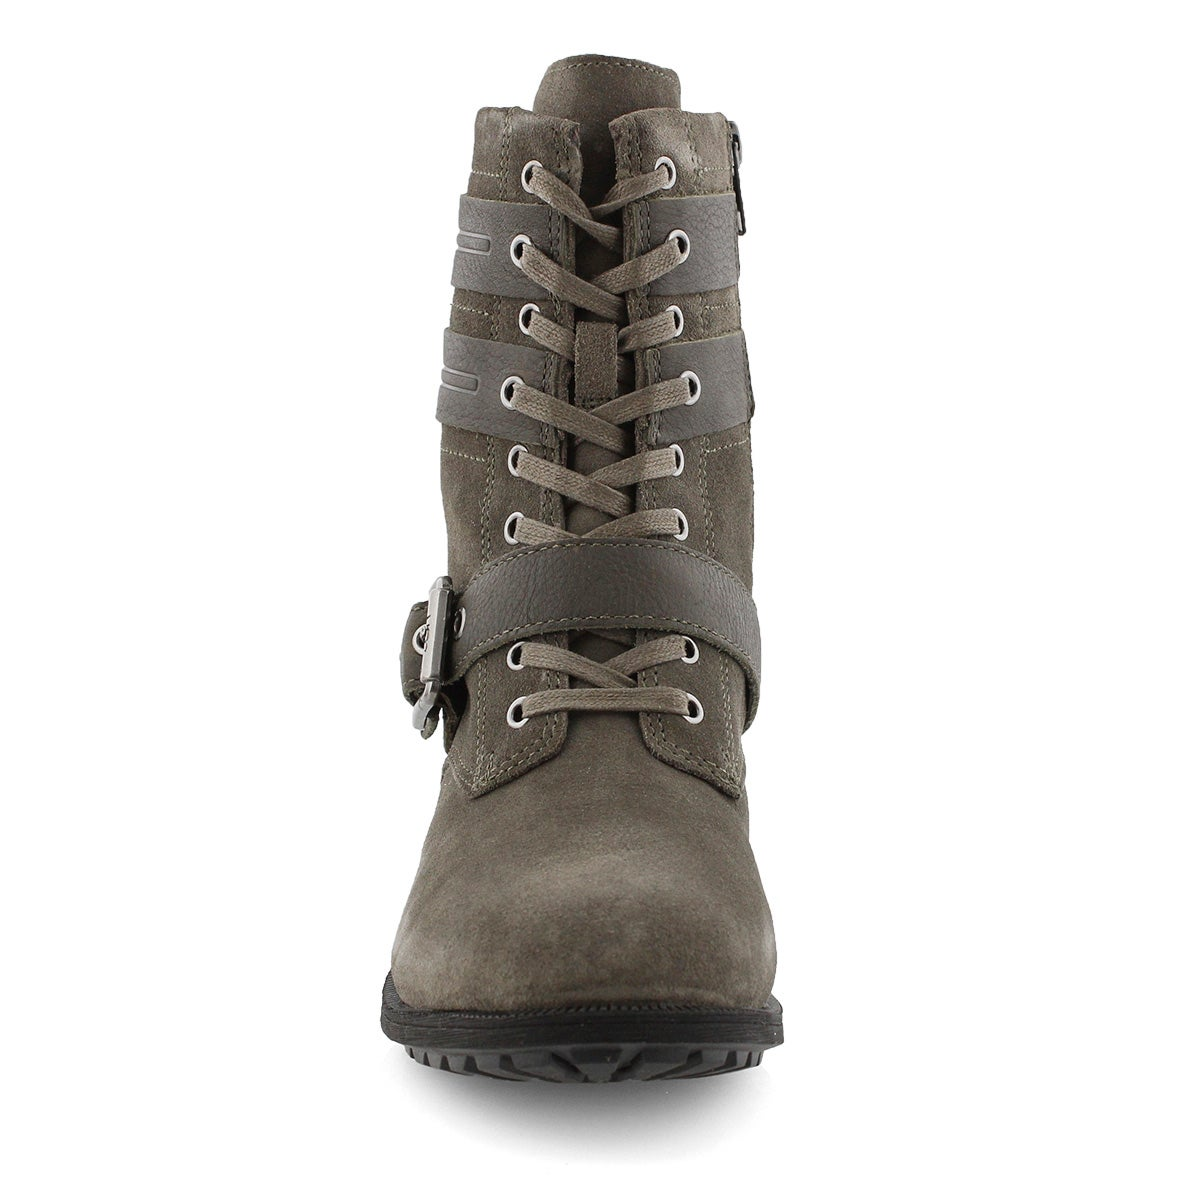 Lds Zia slate lace up wtpf boot